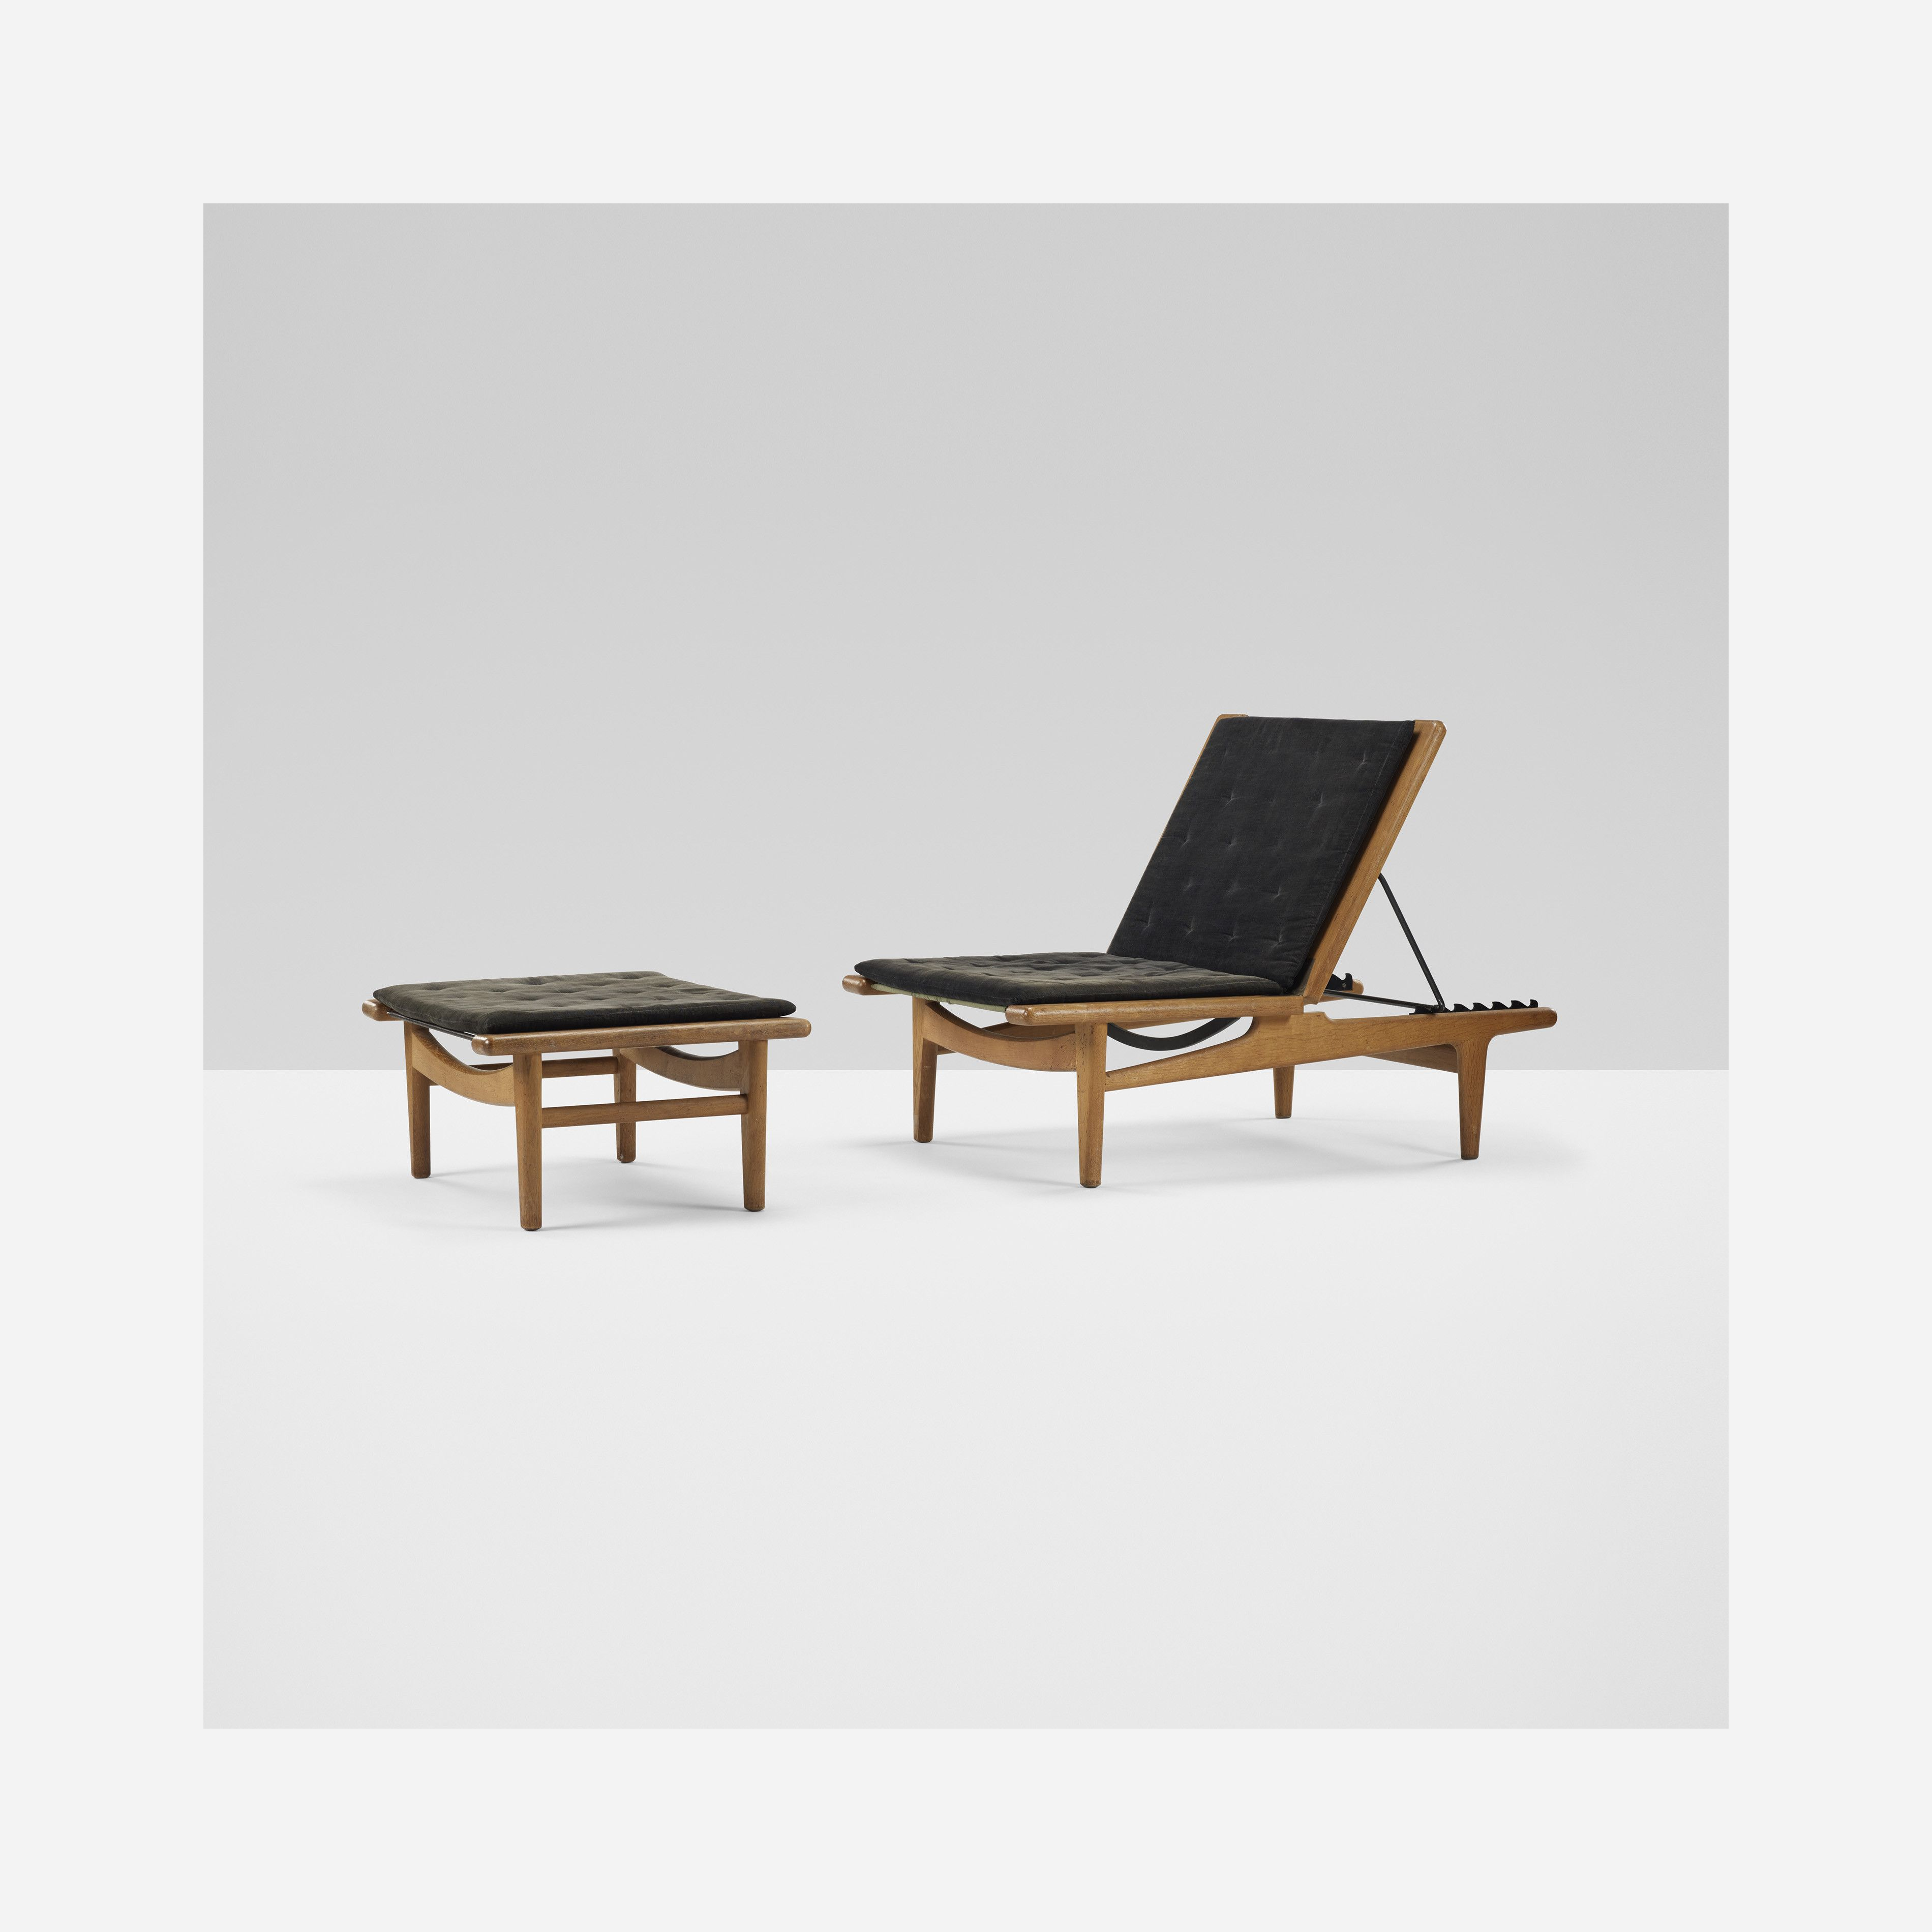 324 Hans Wegner Chaise Lounge And Ottoman Important Design 11 December 2014 Auctions